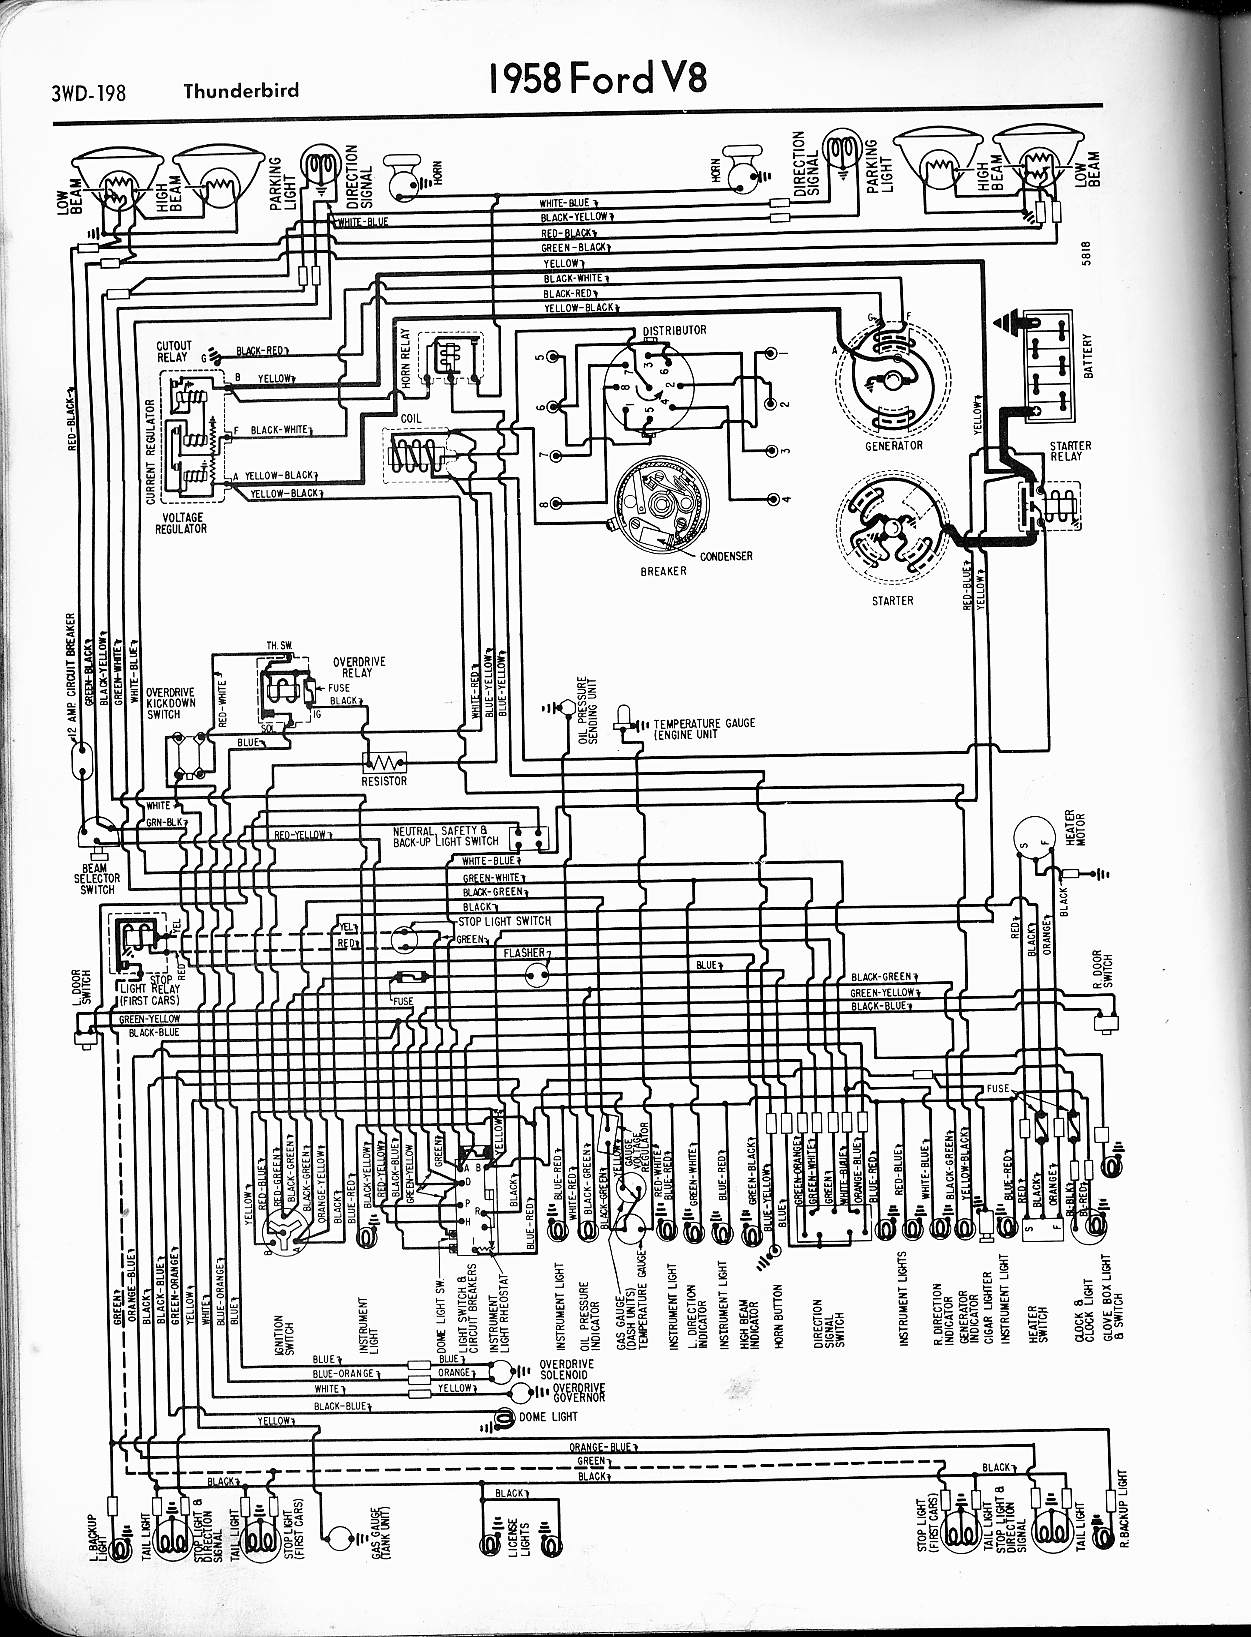 1965 ford thunderbird wiring diagrams wire center u2022 rh ayseesra co 1966 Ford Alternator Wiring Diagram 1966 Ford Truck Wiring Diagram